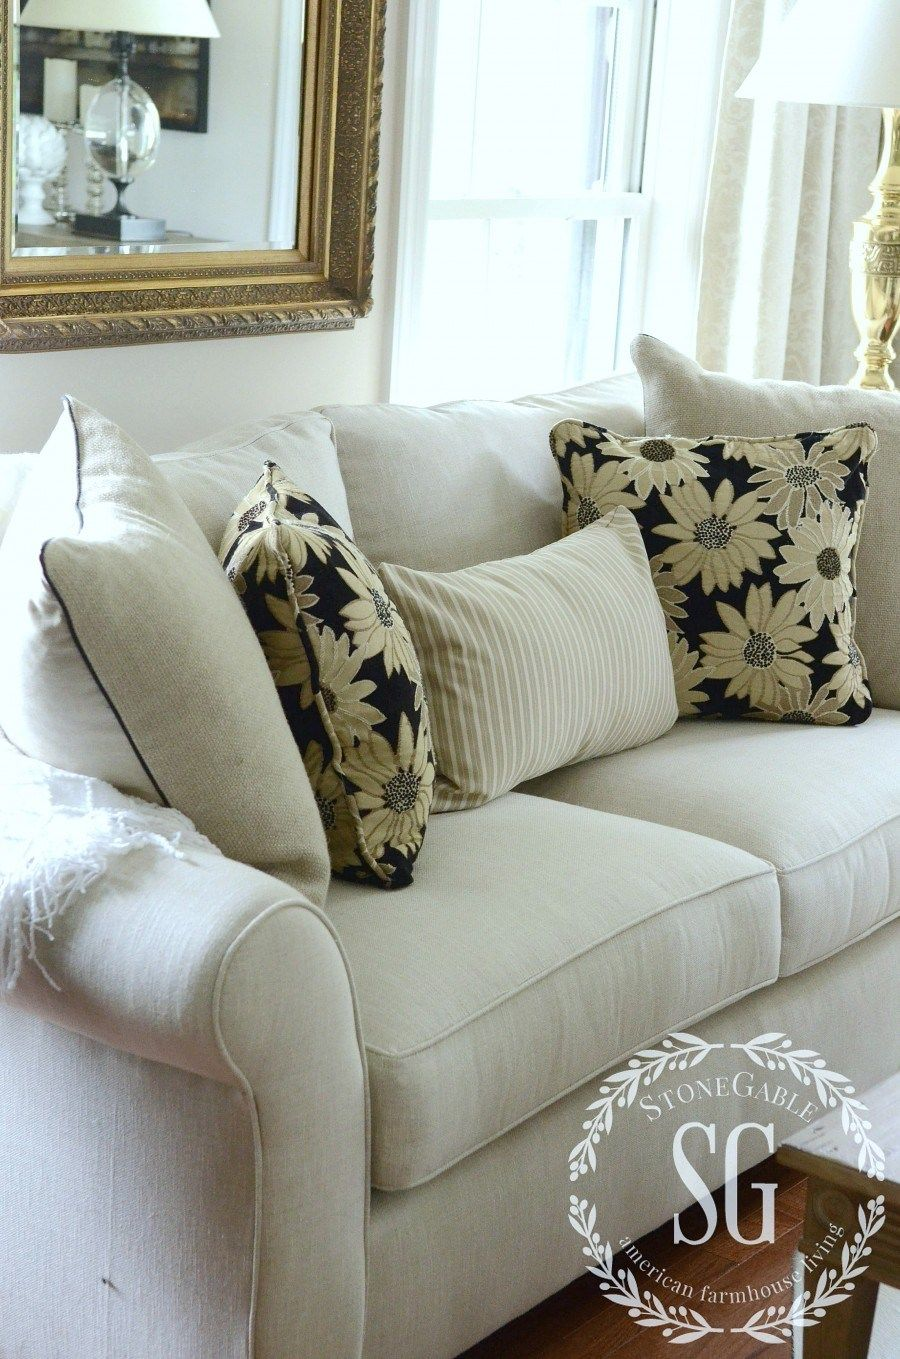 PERFECT PILLOWS-How to chose the perfect ones for your home-stonegableblog.com